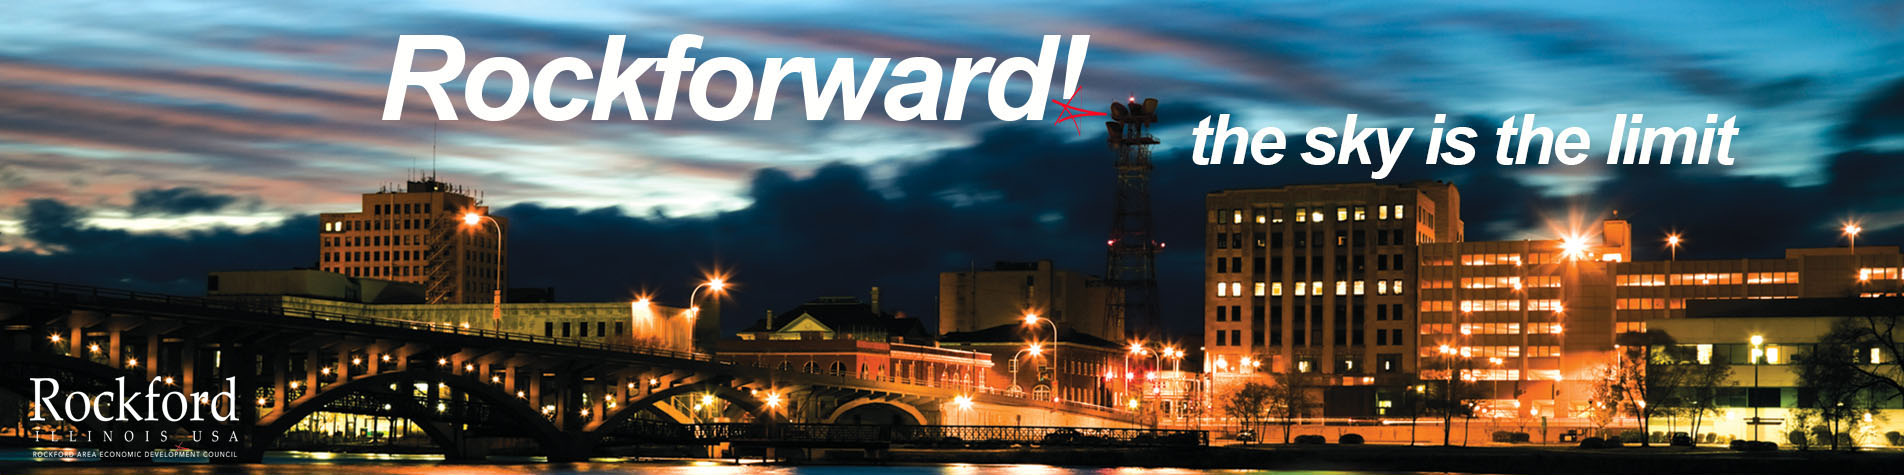 Annual Meeting: Rockforward! the sky is the limit